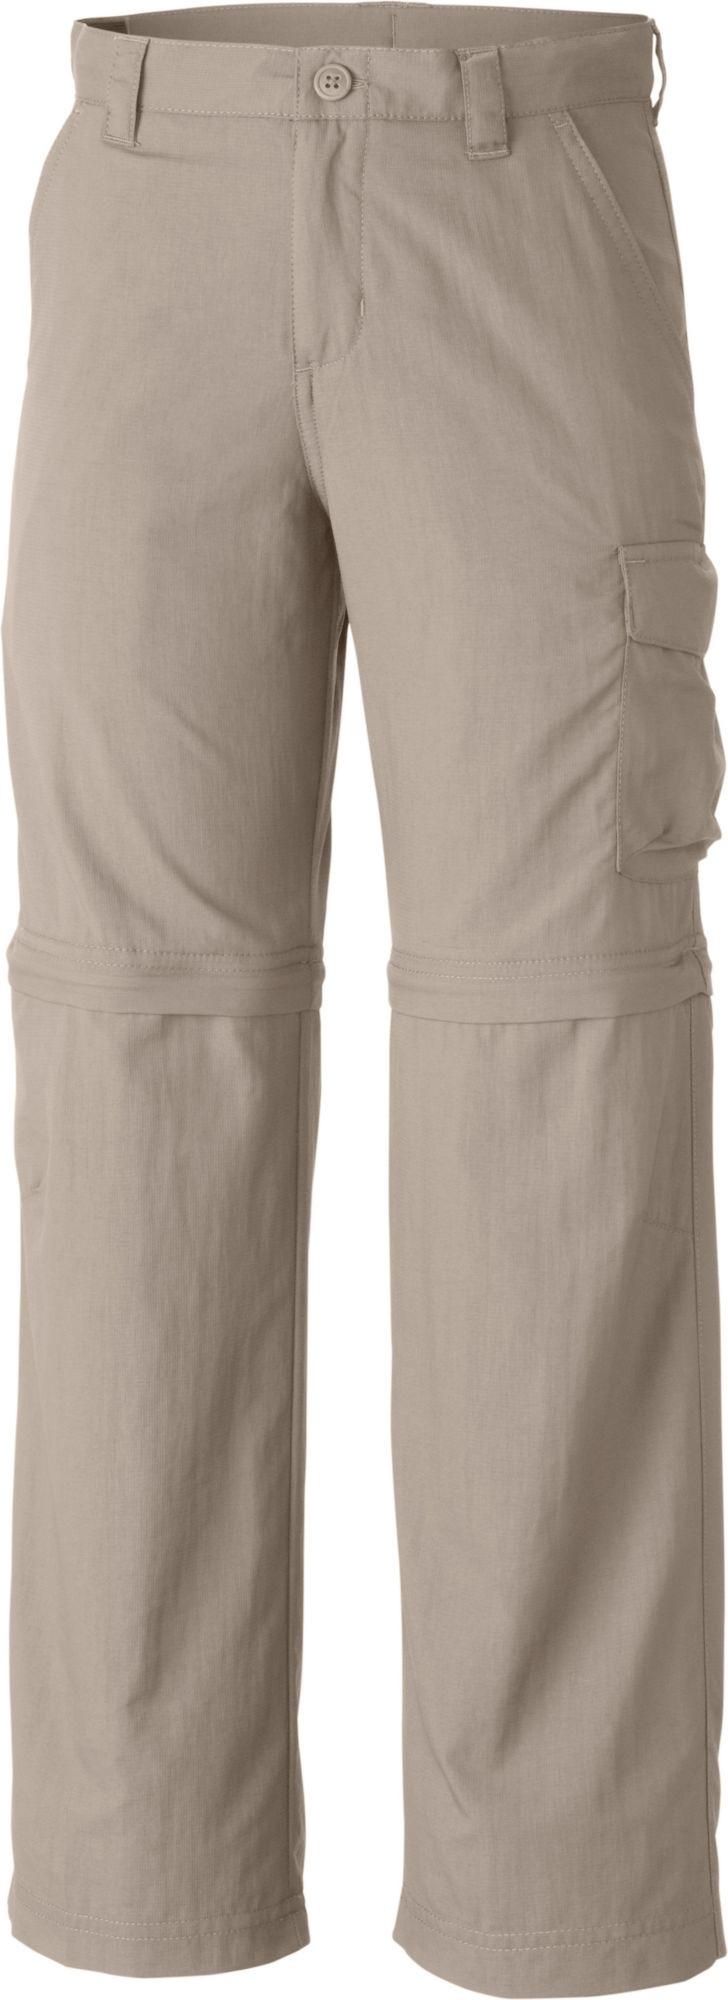 Columbia Boys Sishoeser Ridge III Convertible Pant DICKS Sporting Goods